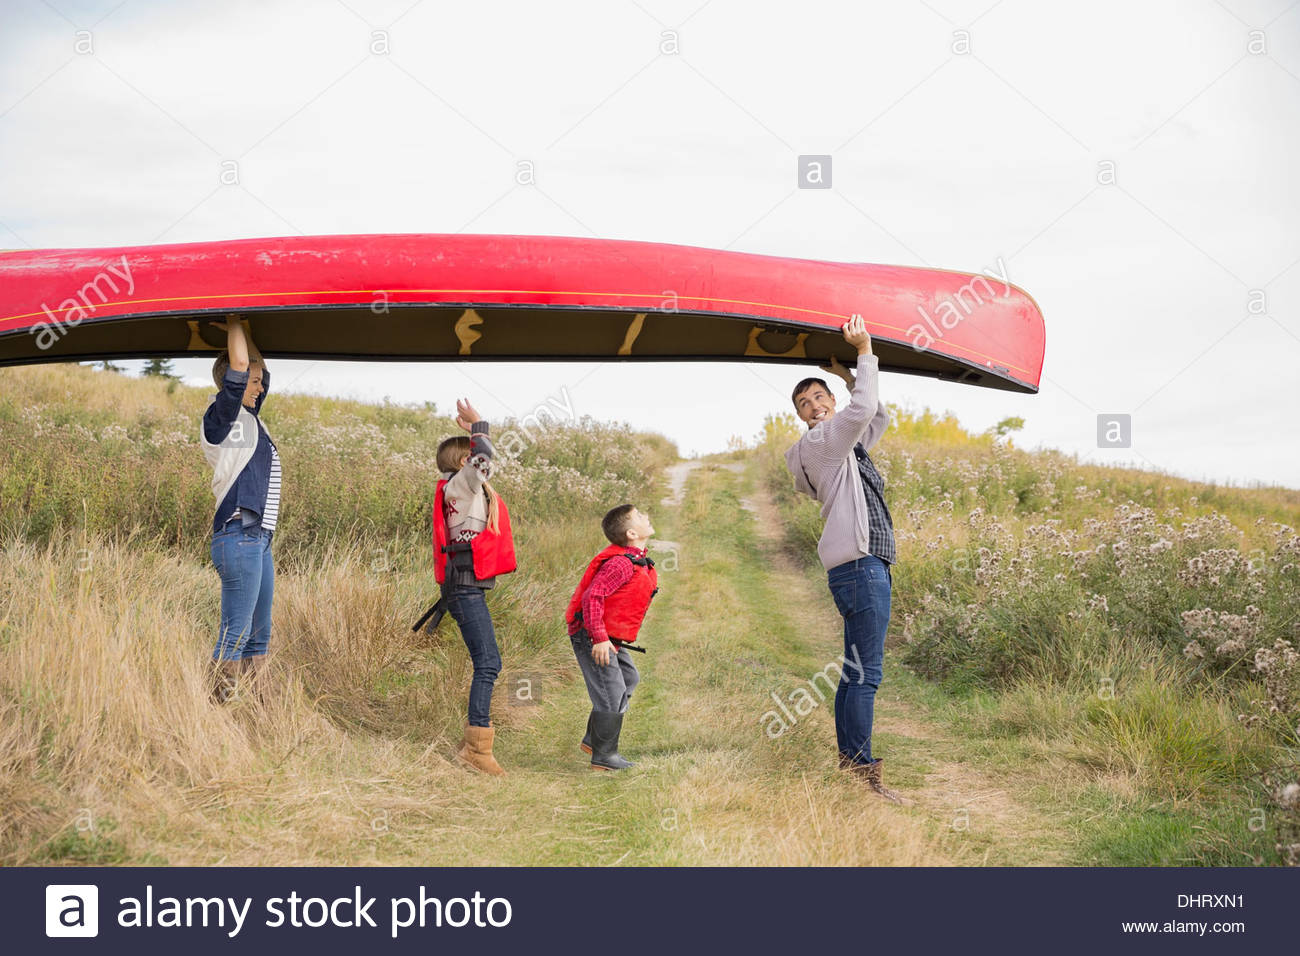 Profile shot of family carrying canoe - Stock Image